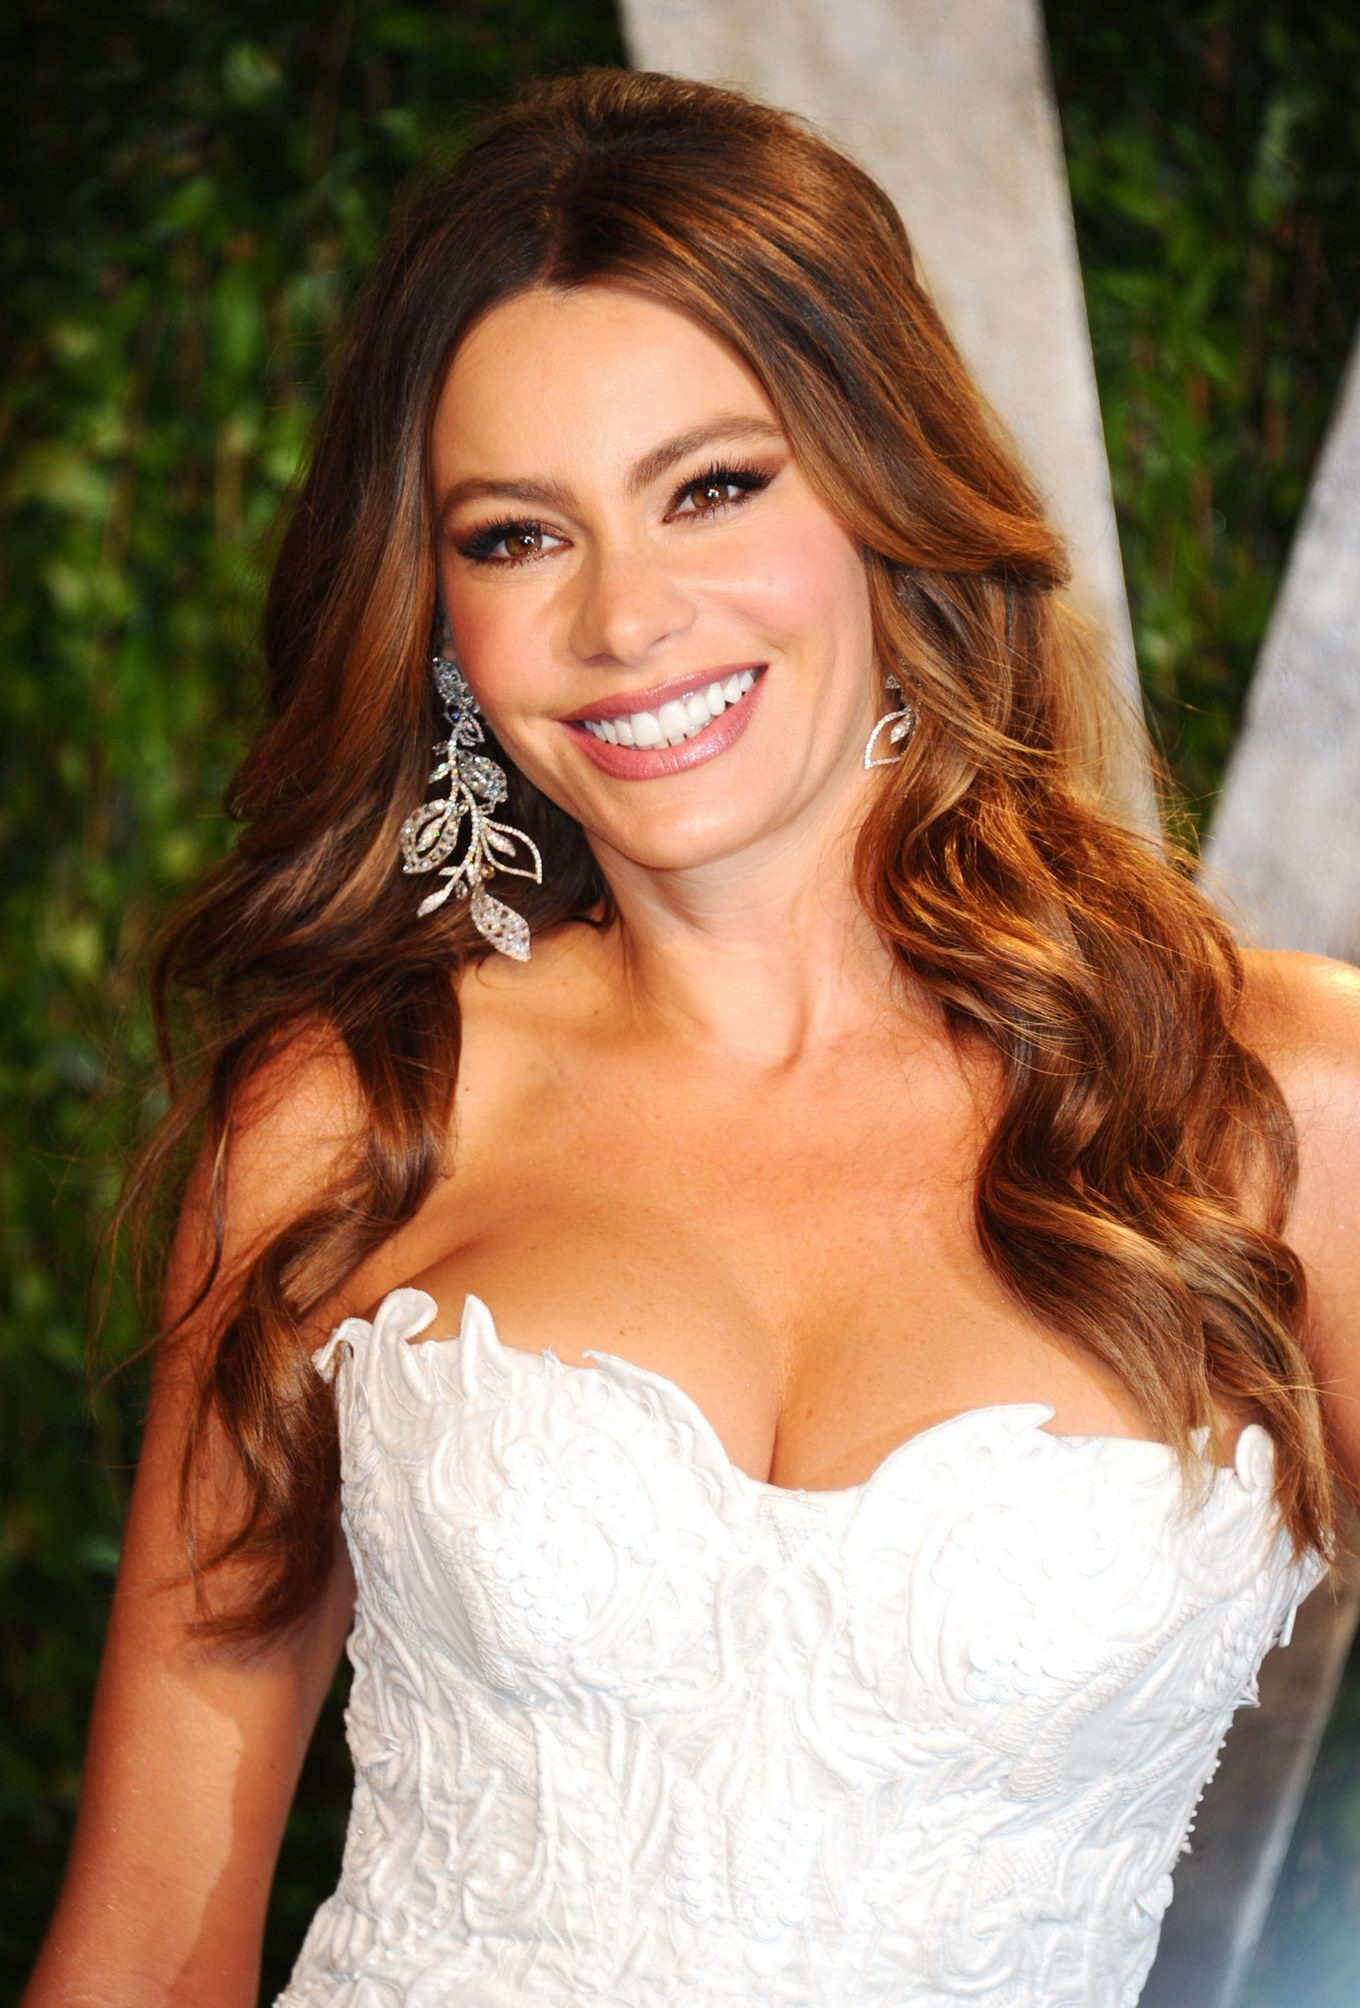 ... Vergara showing cleavage at 2012 Vanity Fair Oscar party - Pichunter: galleries.pichunter.com/krawl/314/3149031/index.html